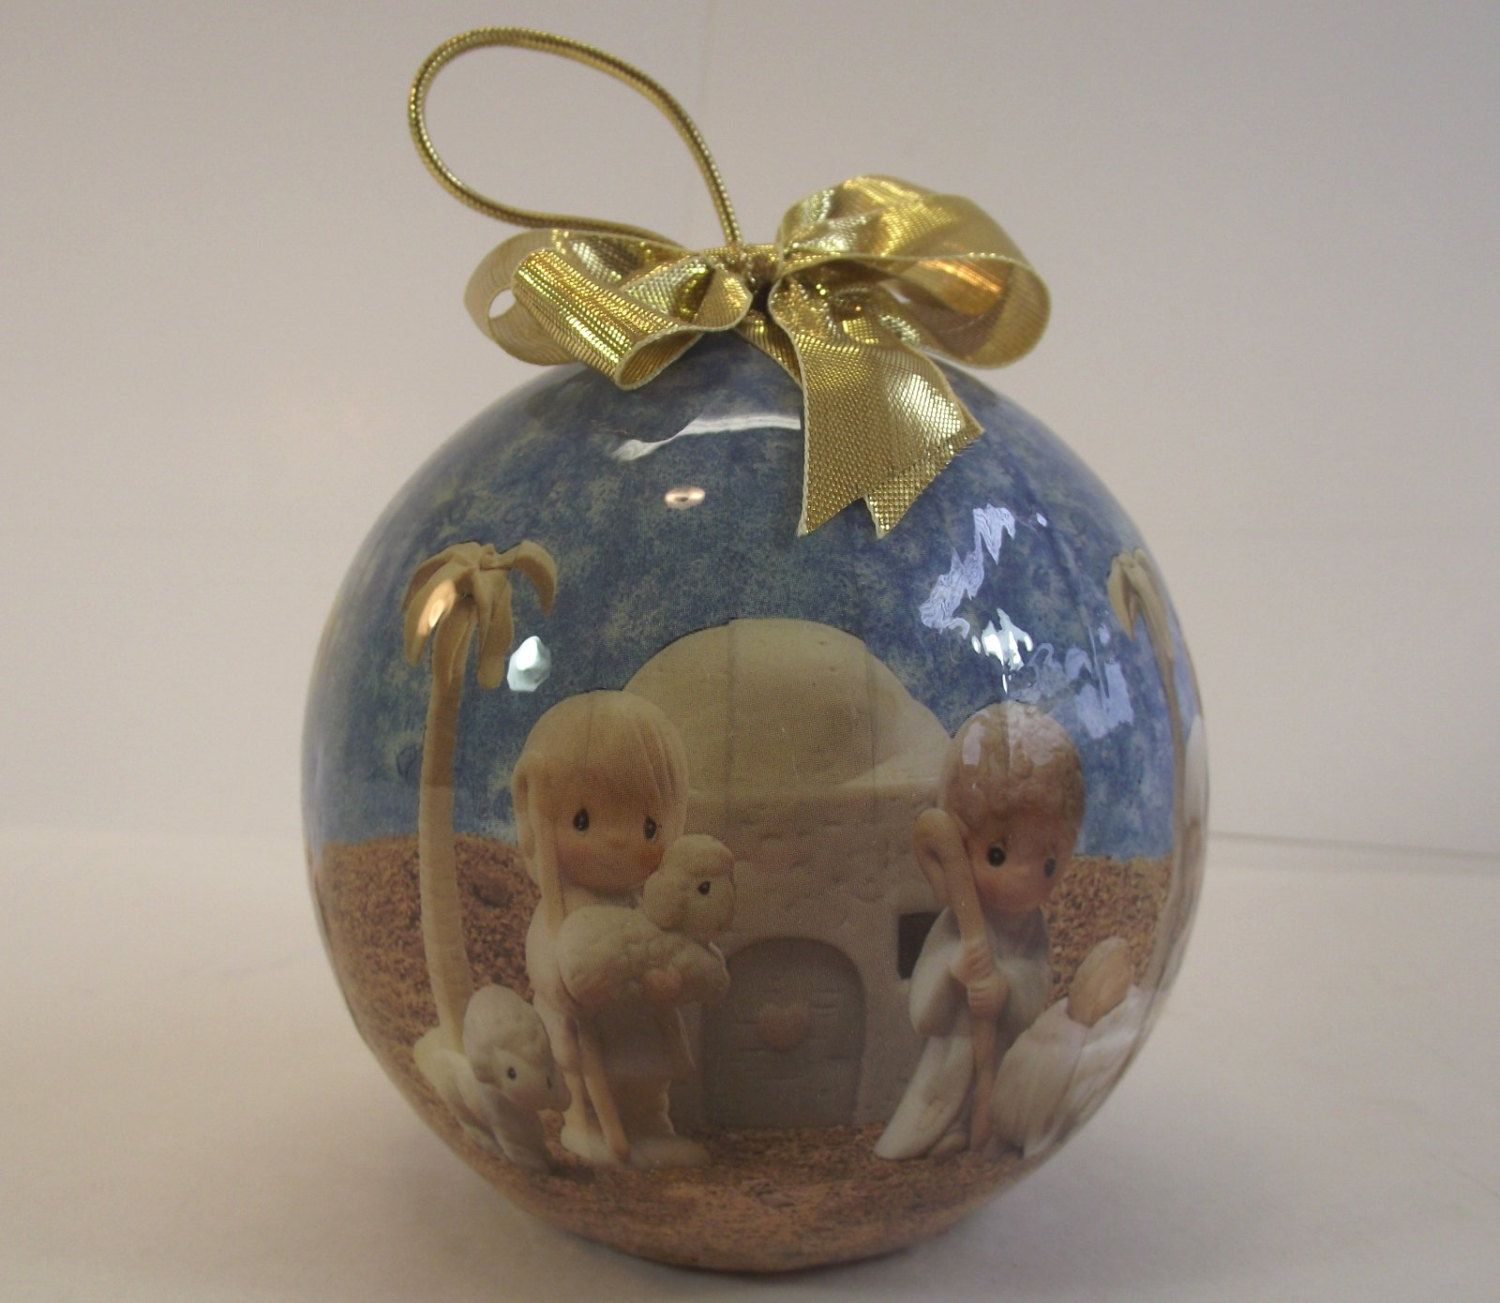 1989 Precious Moments Christmas Ornament 4 Inch Nativity Ball Enesco